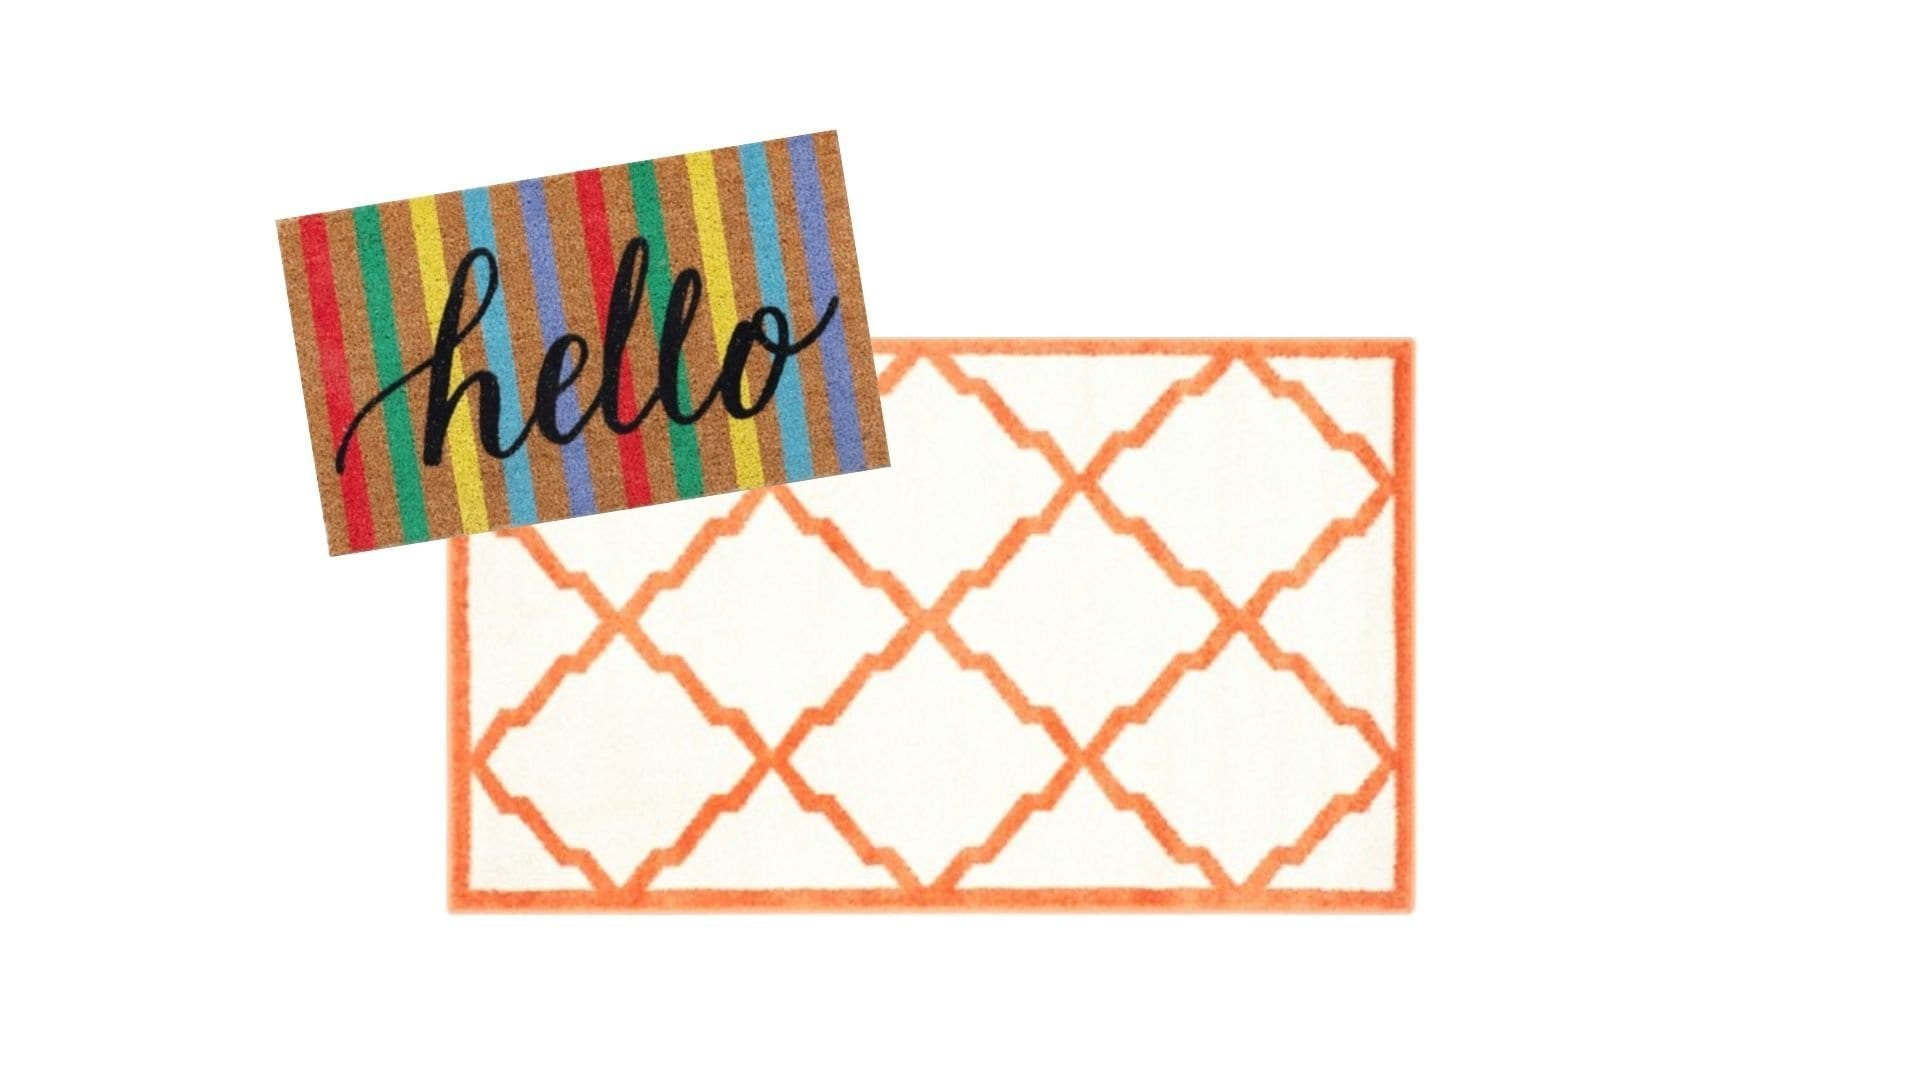 layered rugs at front door — hello striped doormat with orange and white geometric rug » Never Skip Brunch by Cara Newhart